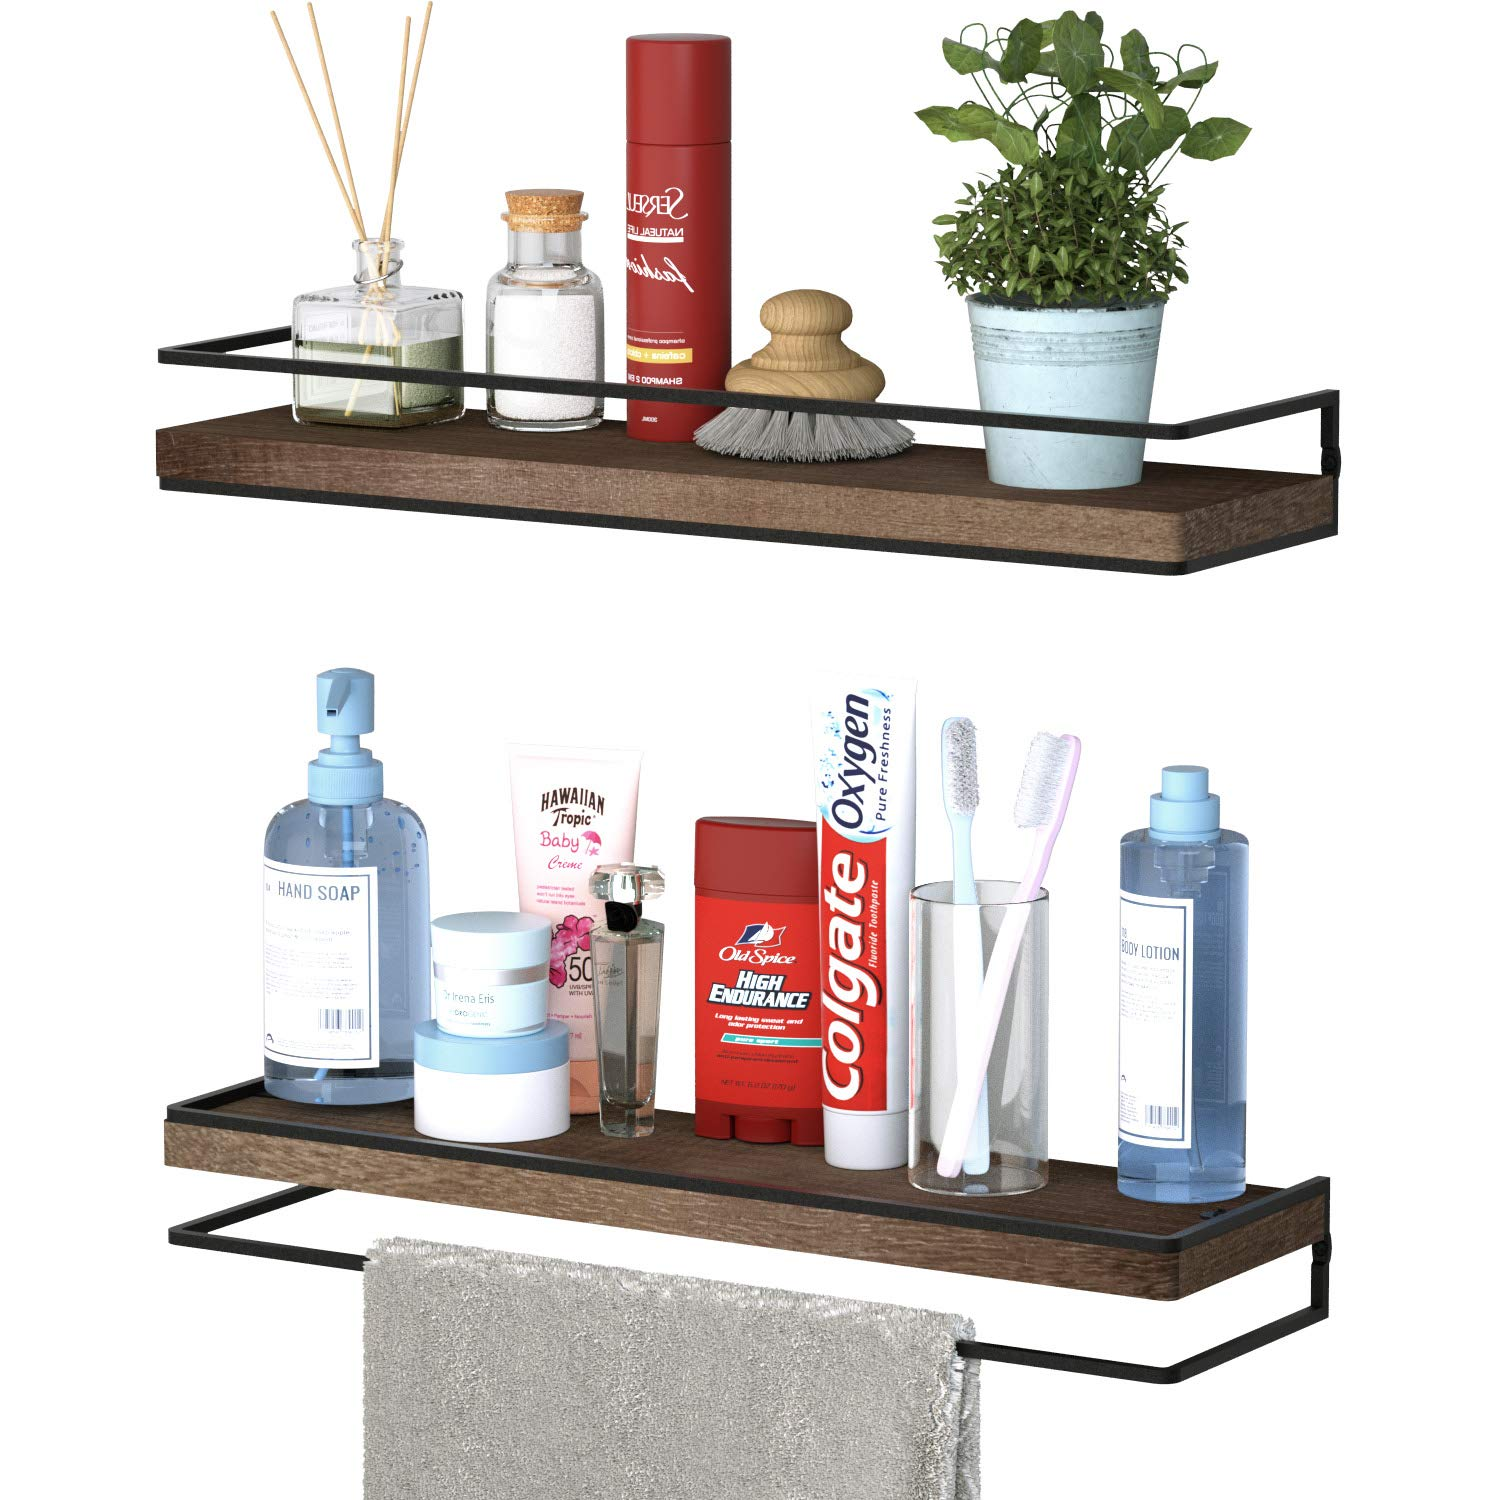 Meangood Floating Shelves Review